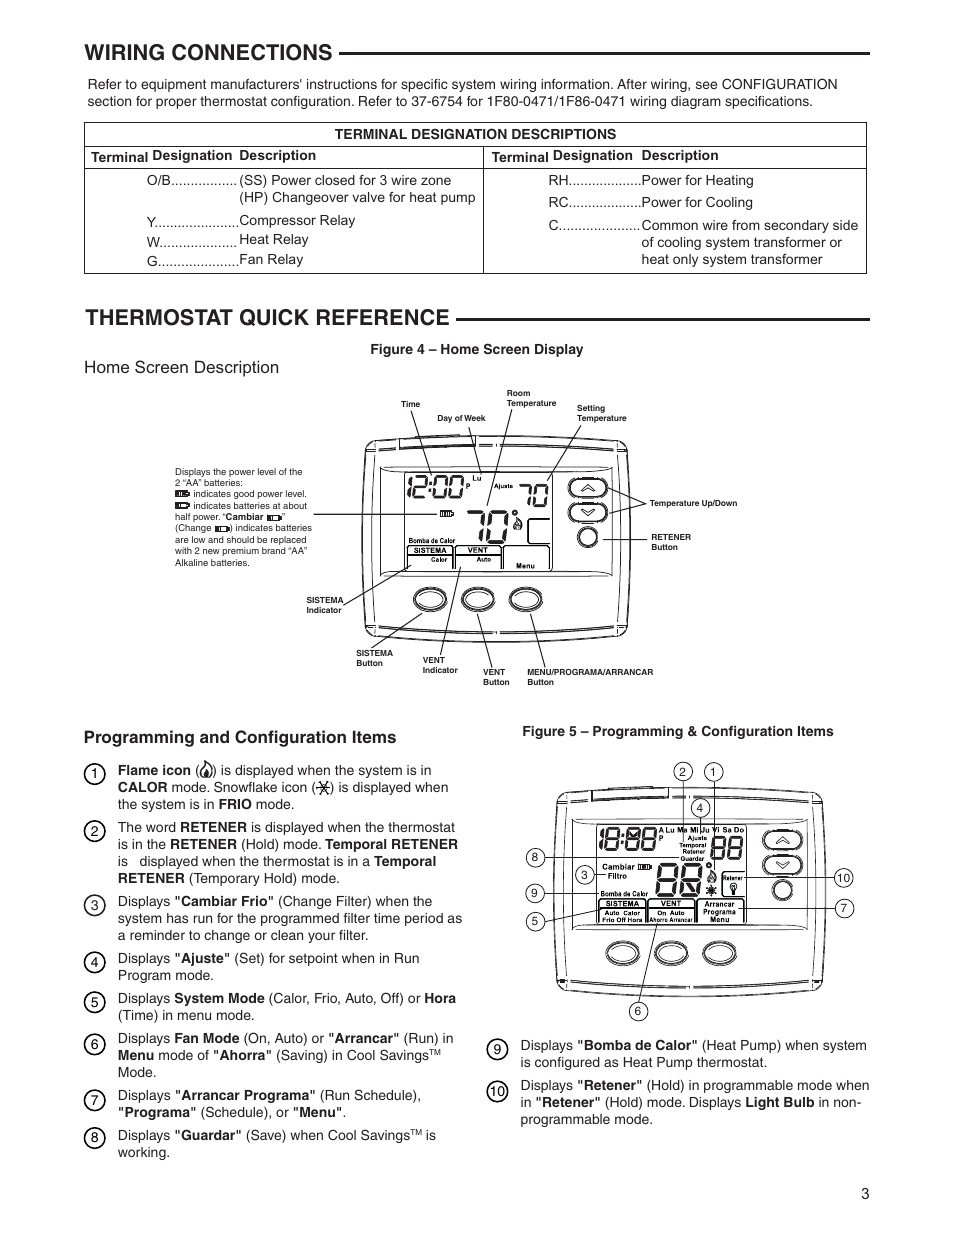 Thermostat Quick Reference Wiring Connections Home Screen Diagram White Rodgers Manuals Description 1f80st 0471 User Manual Page 3 8